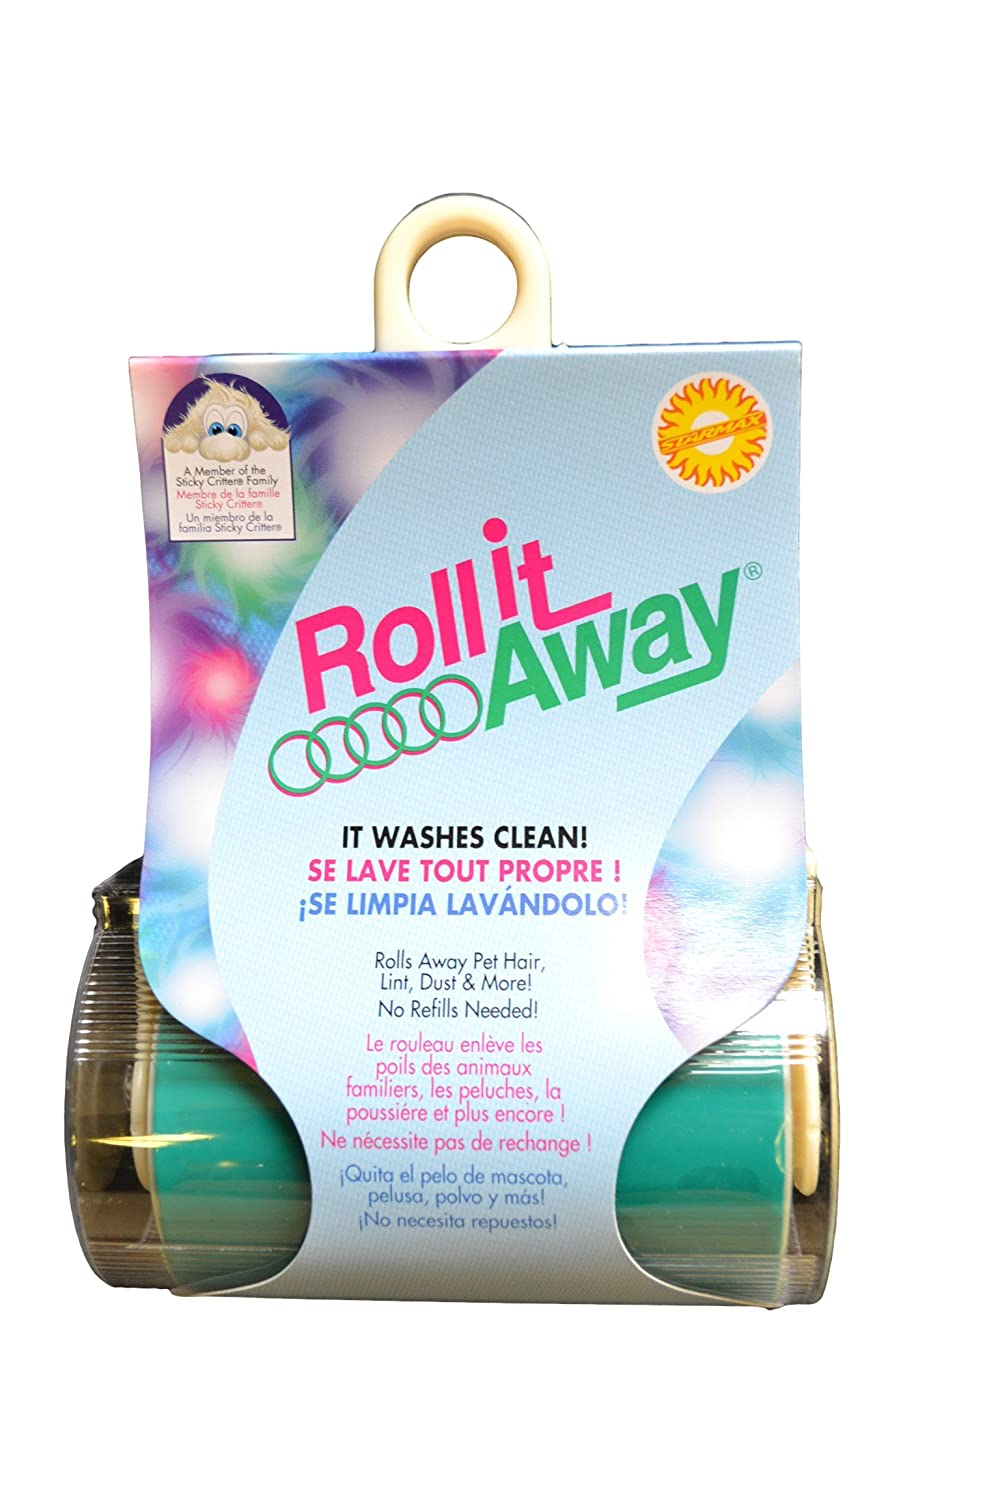 Starmax 265-20 Roll-It Away Washable Sticky Vinyl Roller in Frame, 3